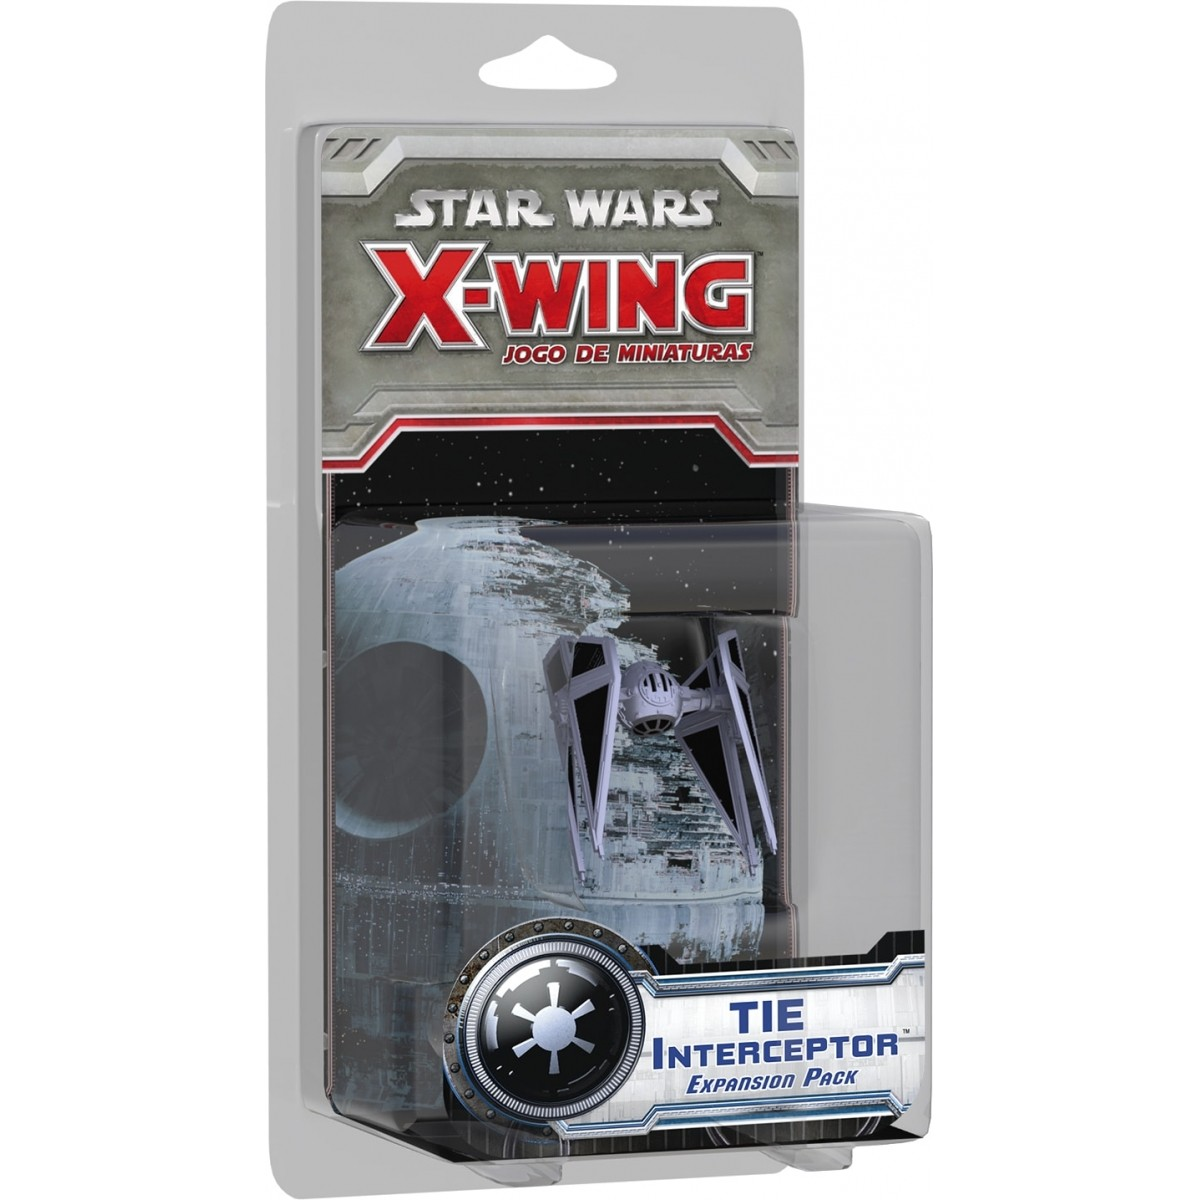 Star Wars X Wing TIE Interceptor Galapagos SWX009  - Place Games